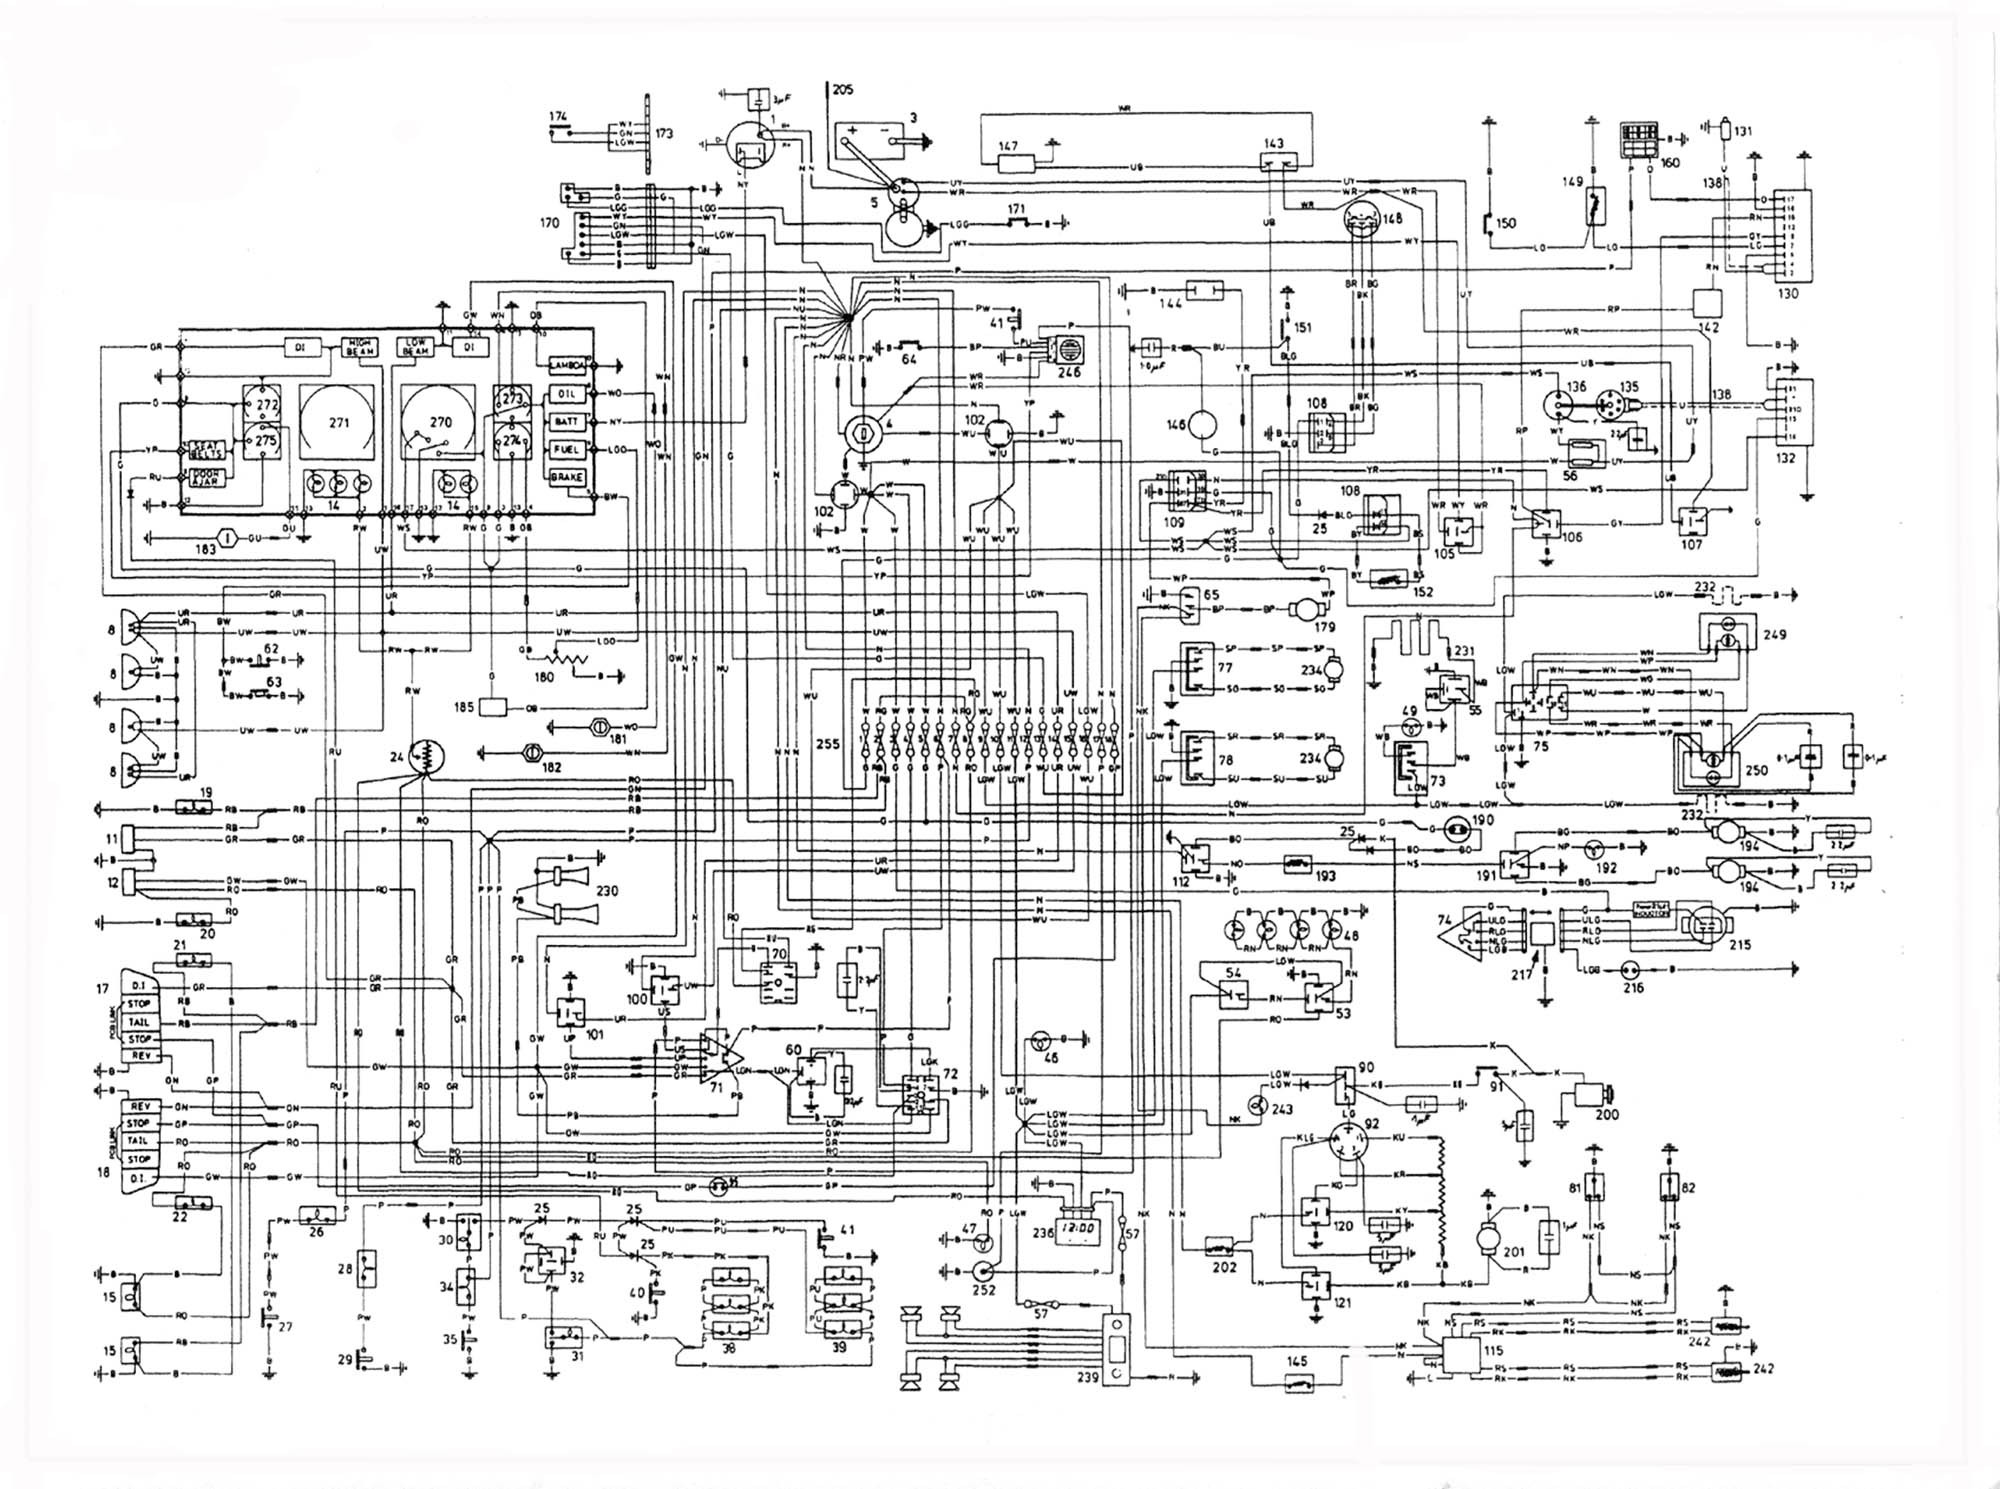 Diagram  Renault Clio 1 4 Wiring Diagram Full Version Hd Quality Wiring Diagram